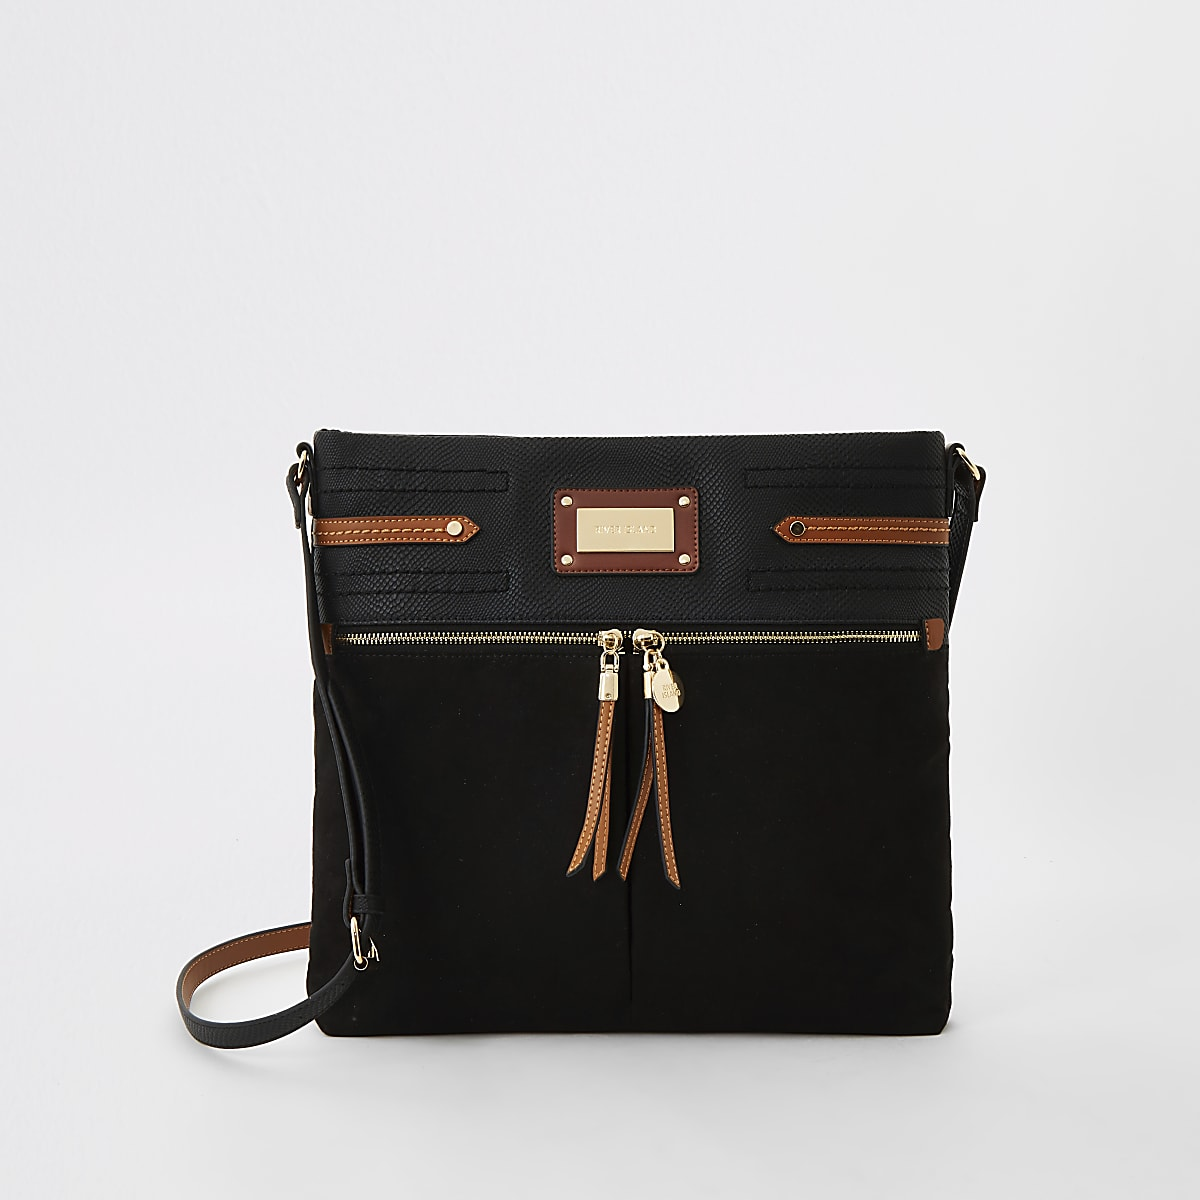 Black double pocket messenger cross body bag